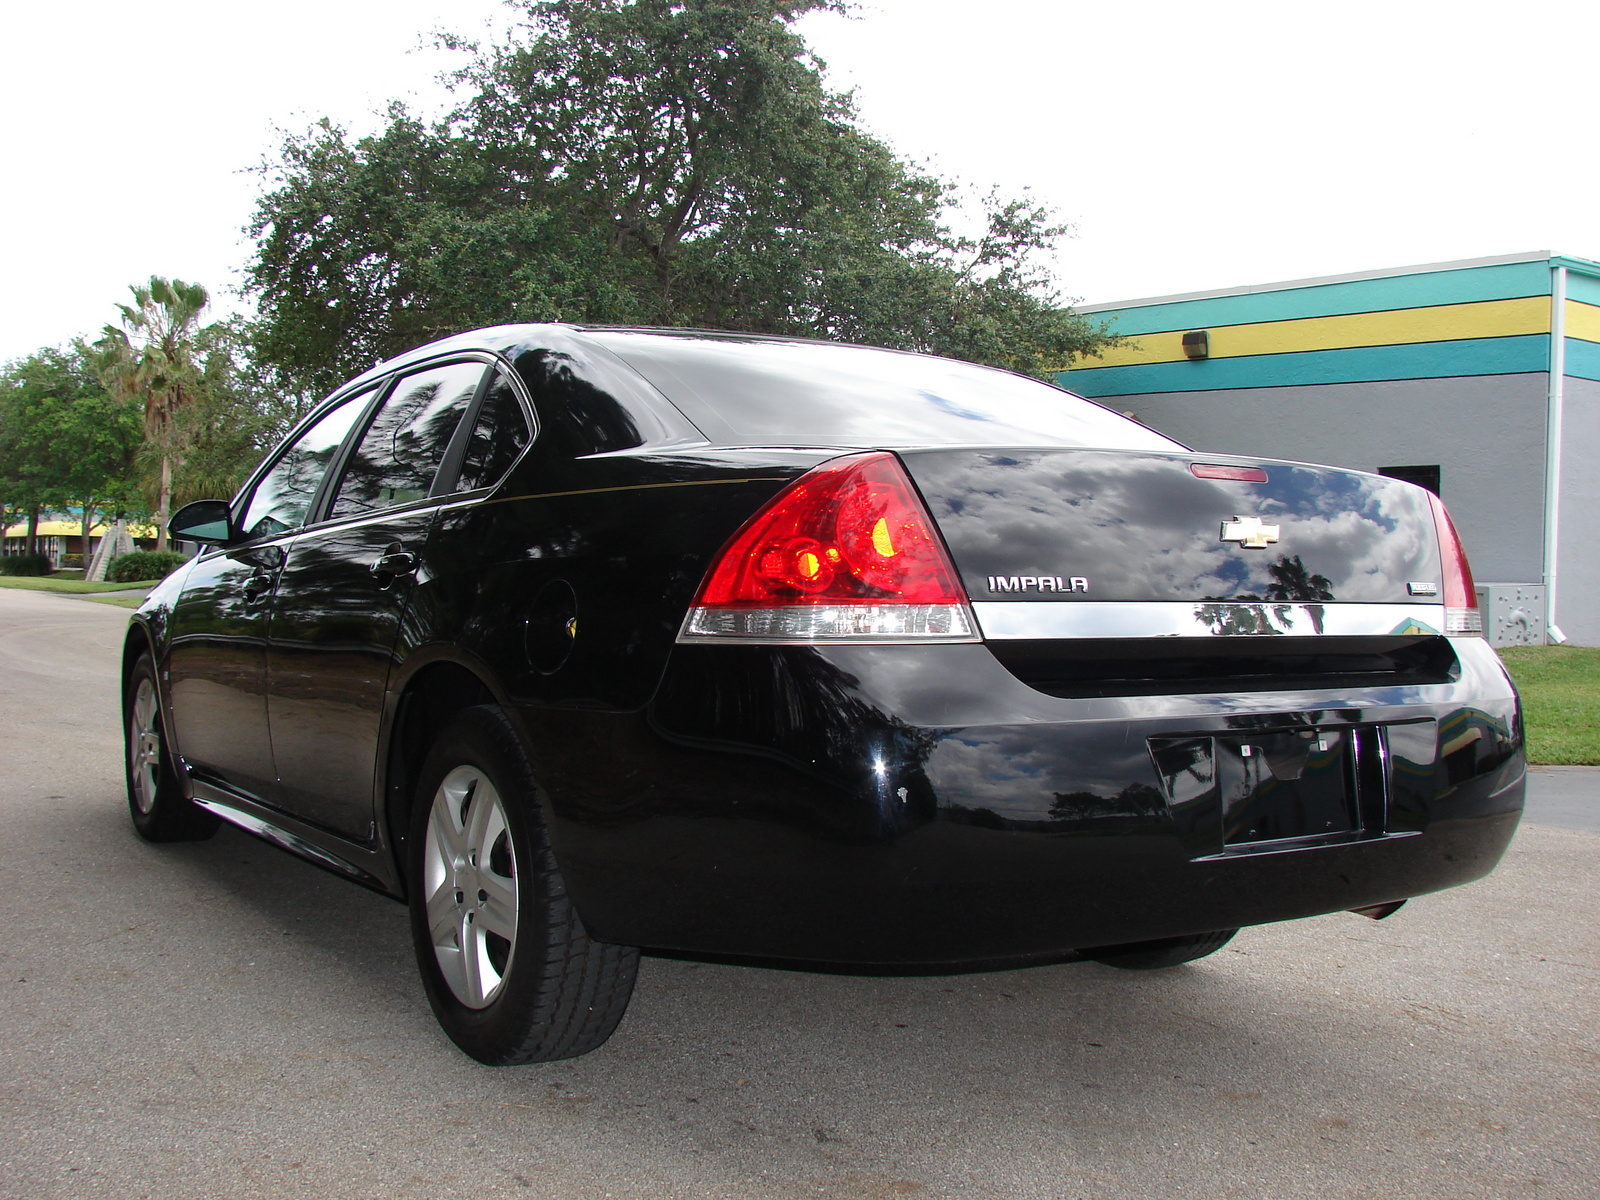 2010 chevrolet impala pictures cargurus. Cars Review. Best American Auto & Cars Review